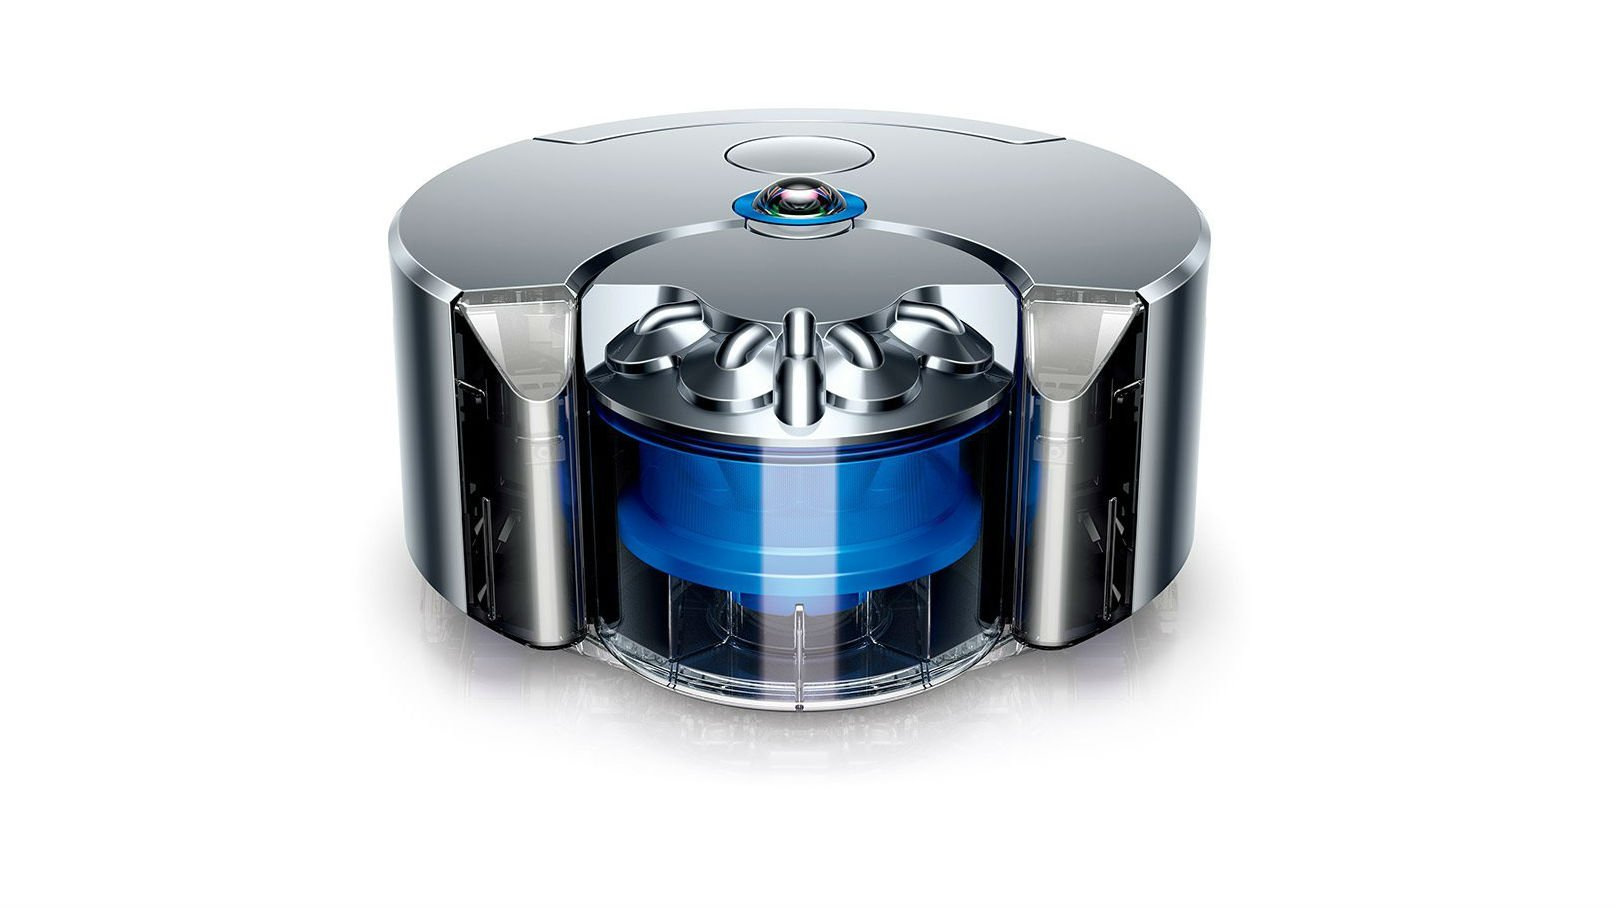 Best Robot Vacuum Cleaner 2019 Clean Up With The Best